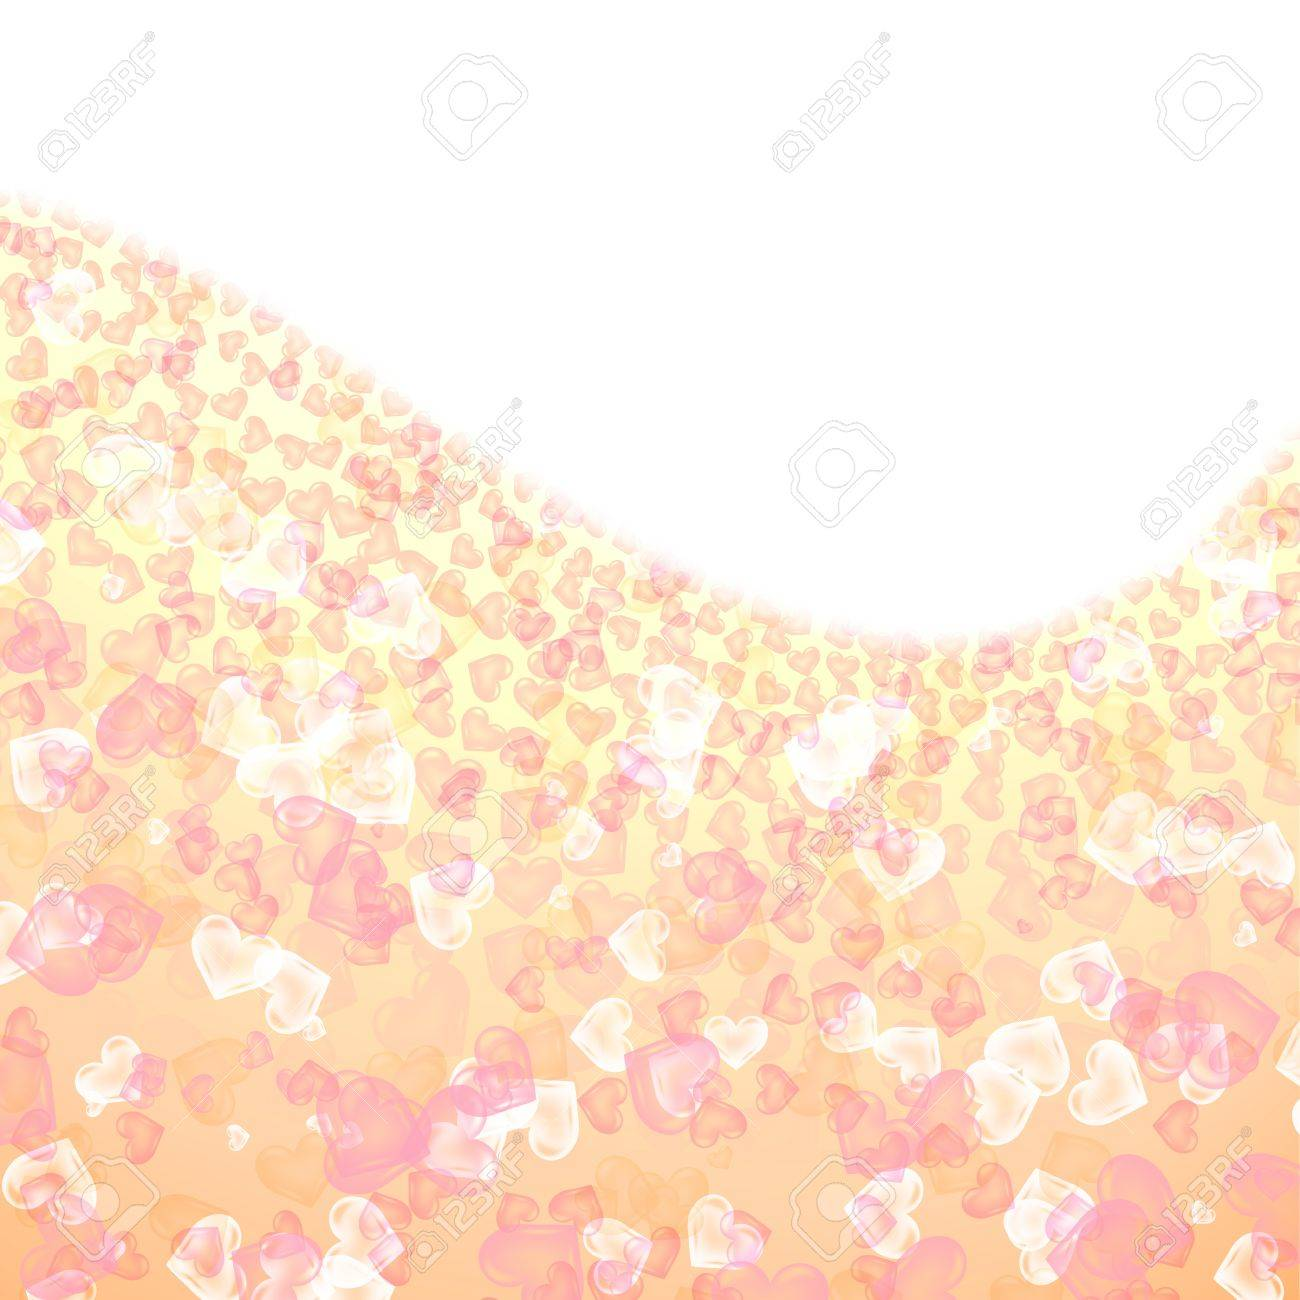 romantic abstract background of colored hearts on a curved field Stock Photo - 16320318